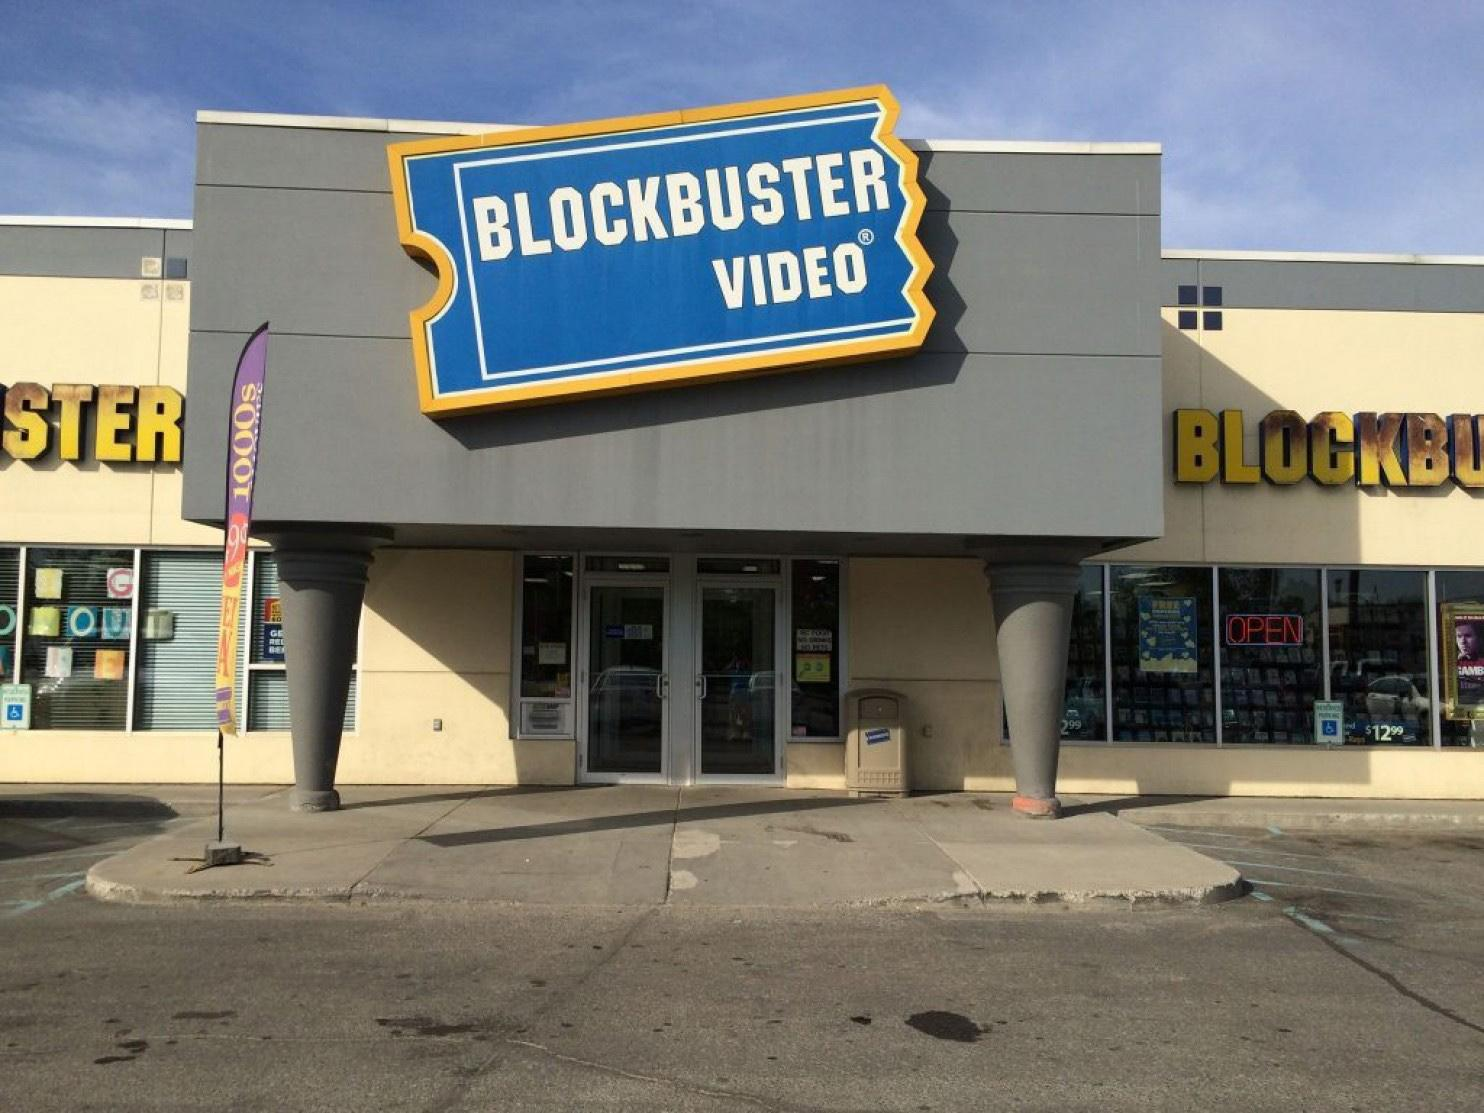 blockbuster image 15 fast-forward facts about blockbuster video by jake rossen getty images starting in 1994 blockbuster wound up losing a billion all by itself in 2010.